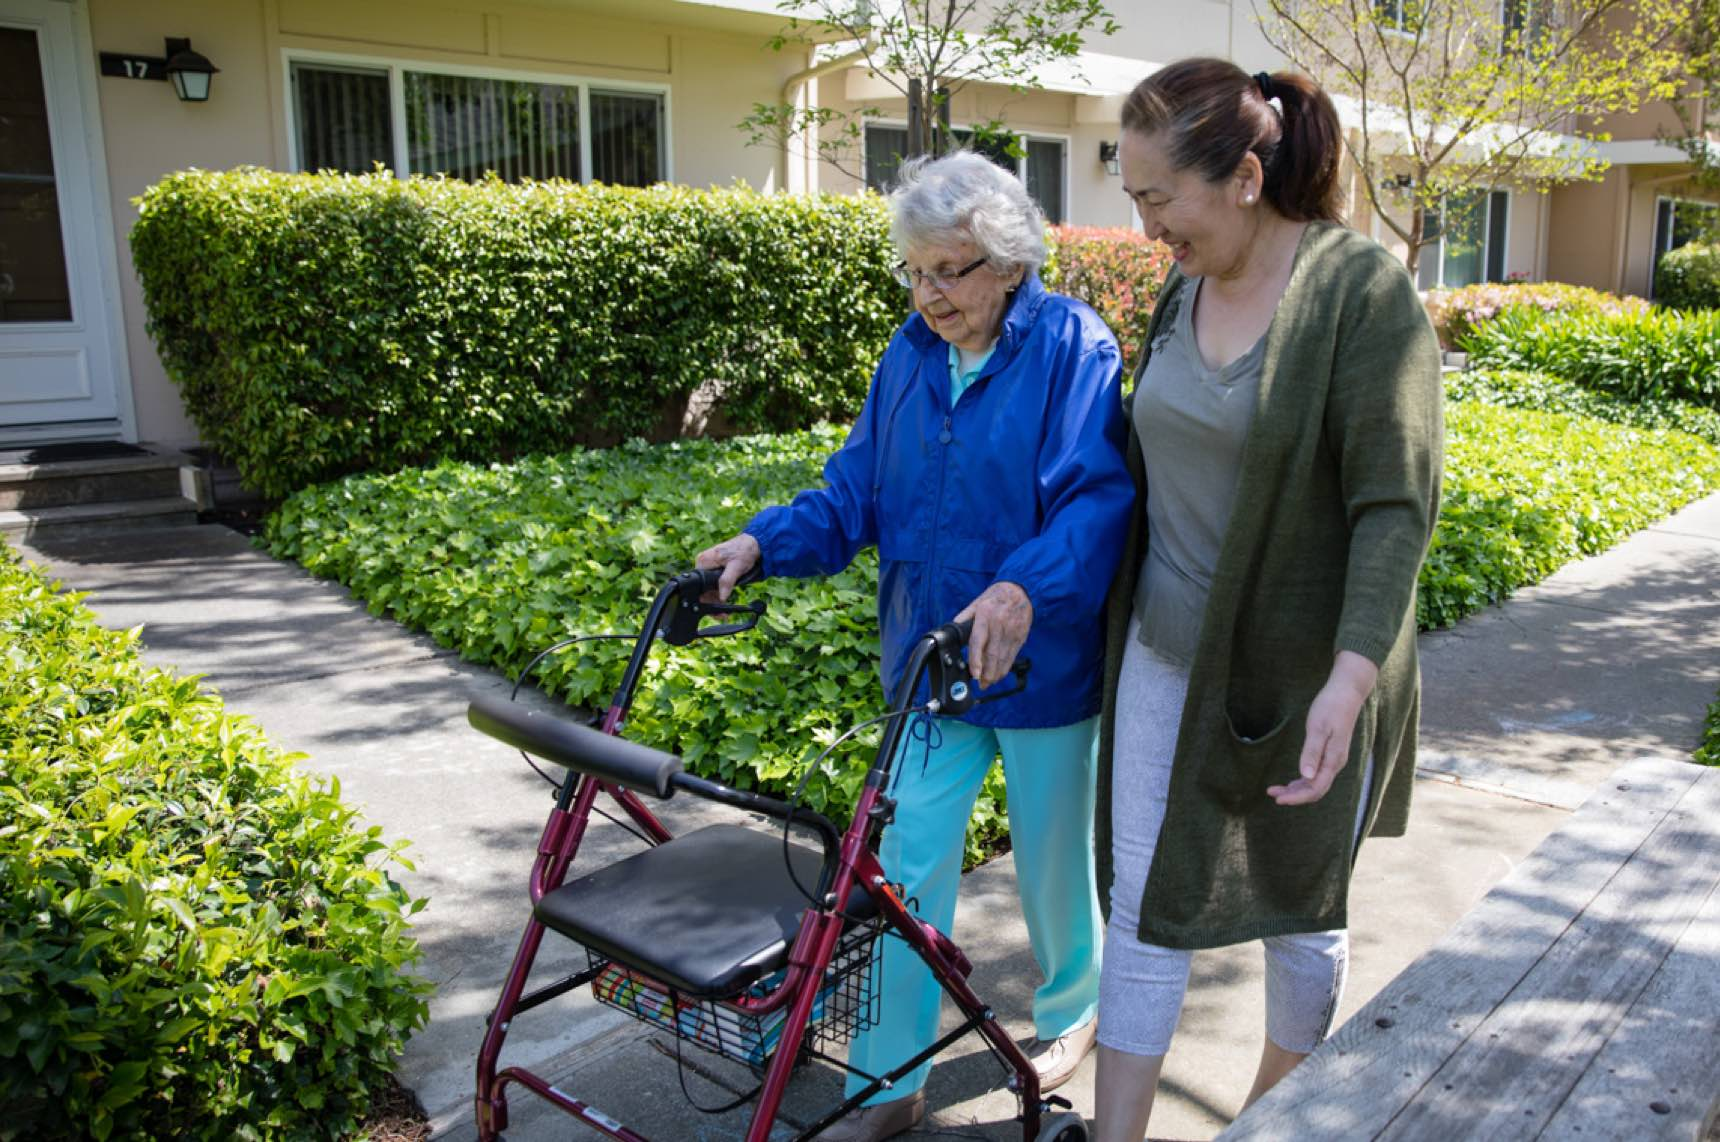 Caregiver walking with elder client